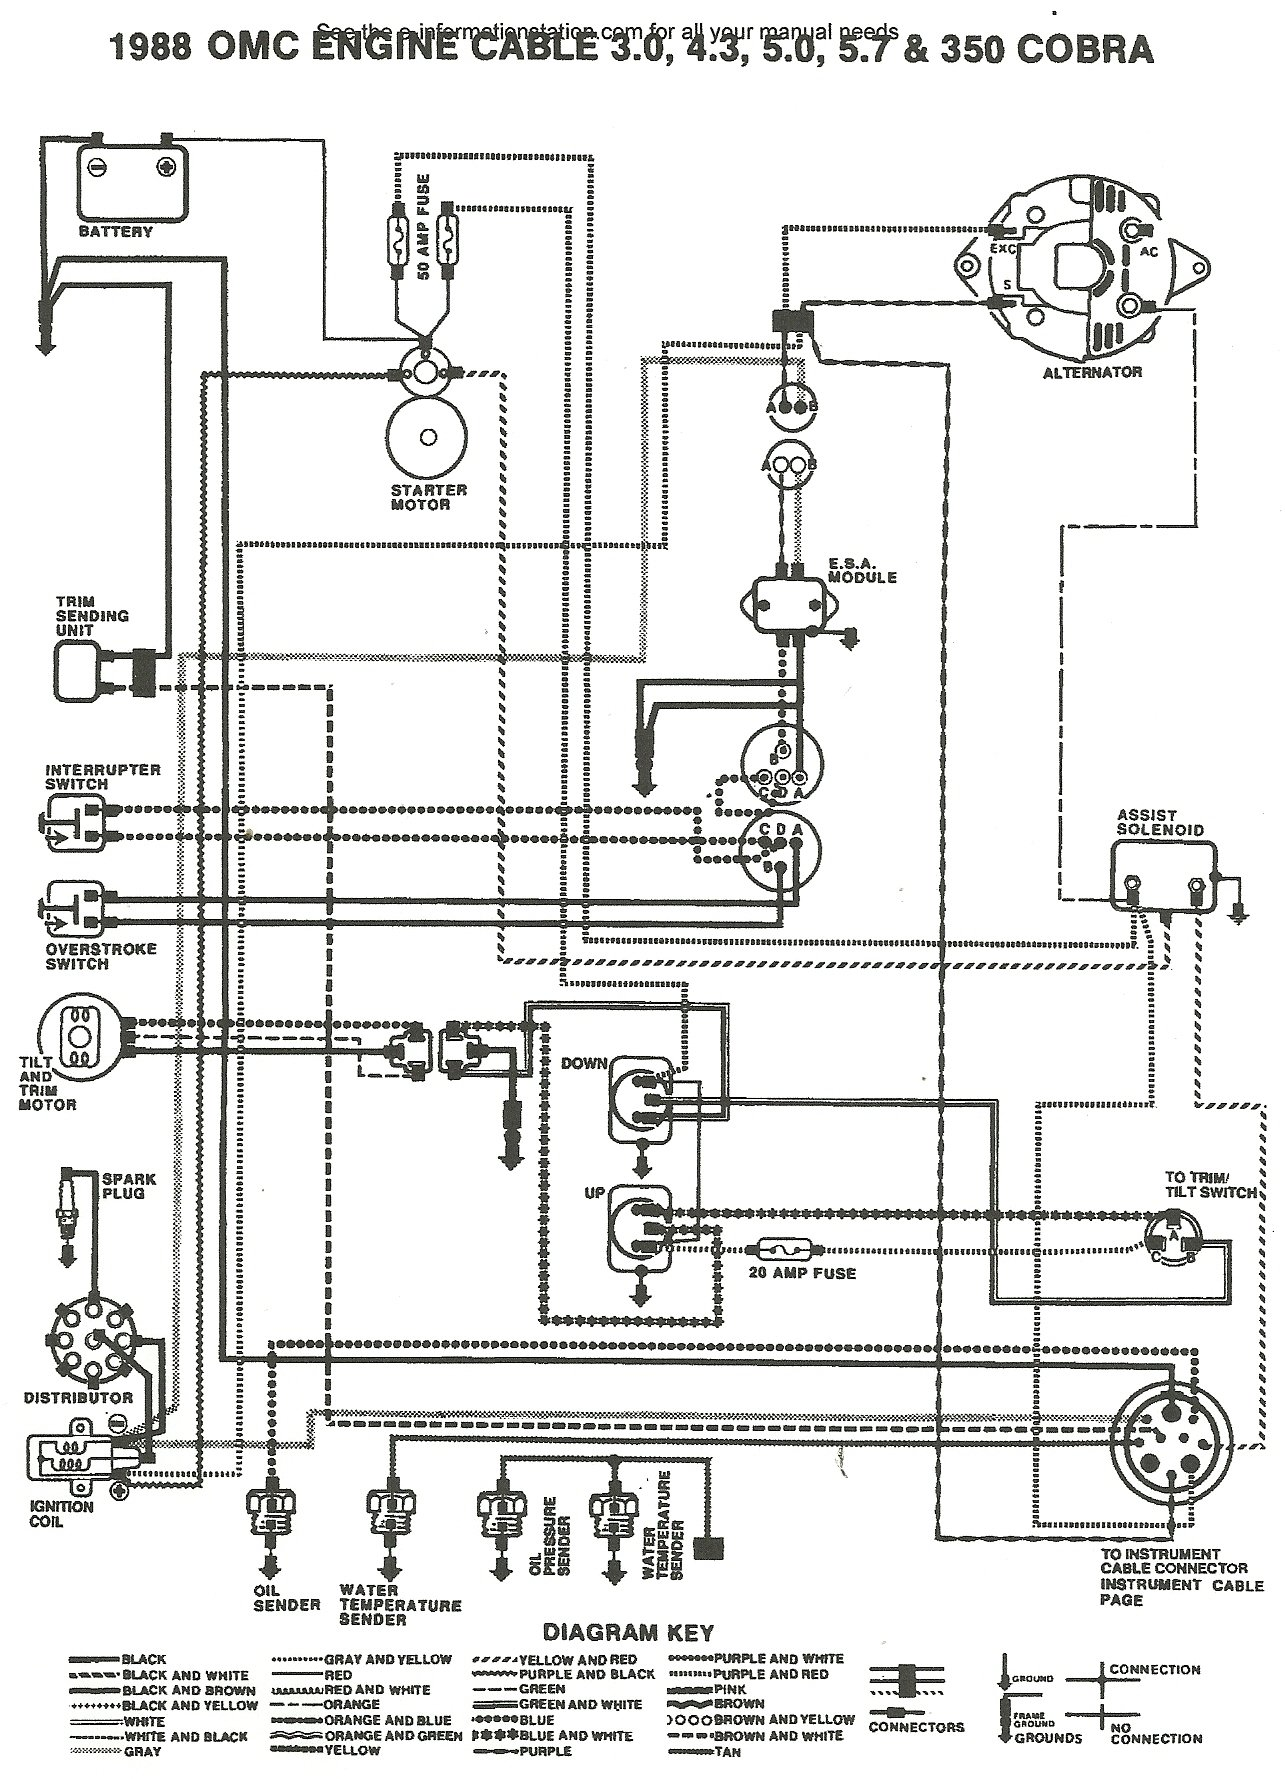 1989 4.3 Omc Cobra Ignition Wiring Diagram